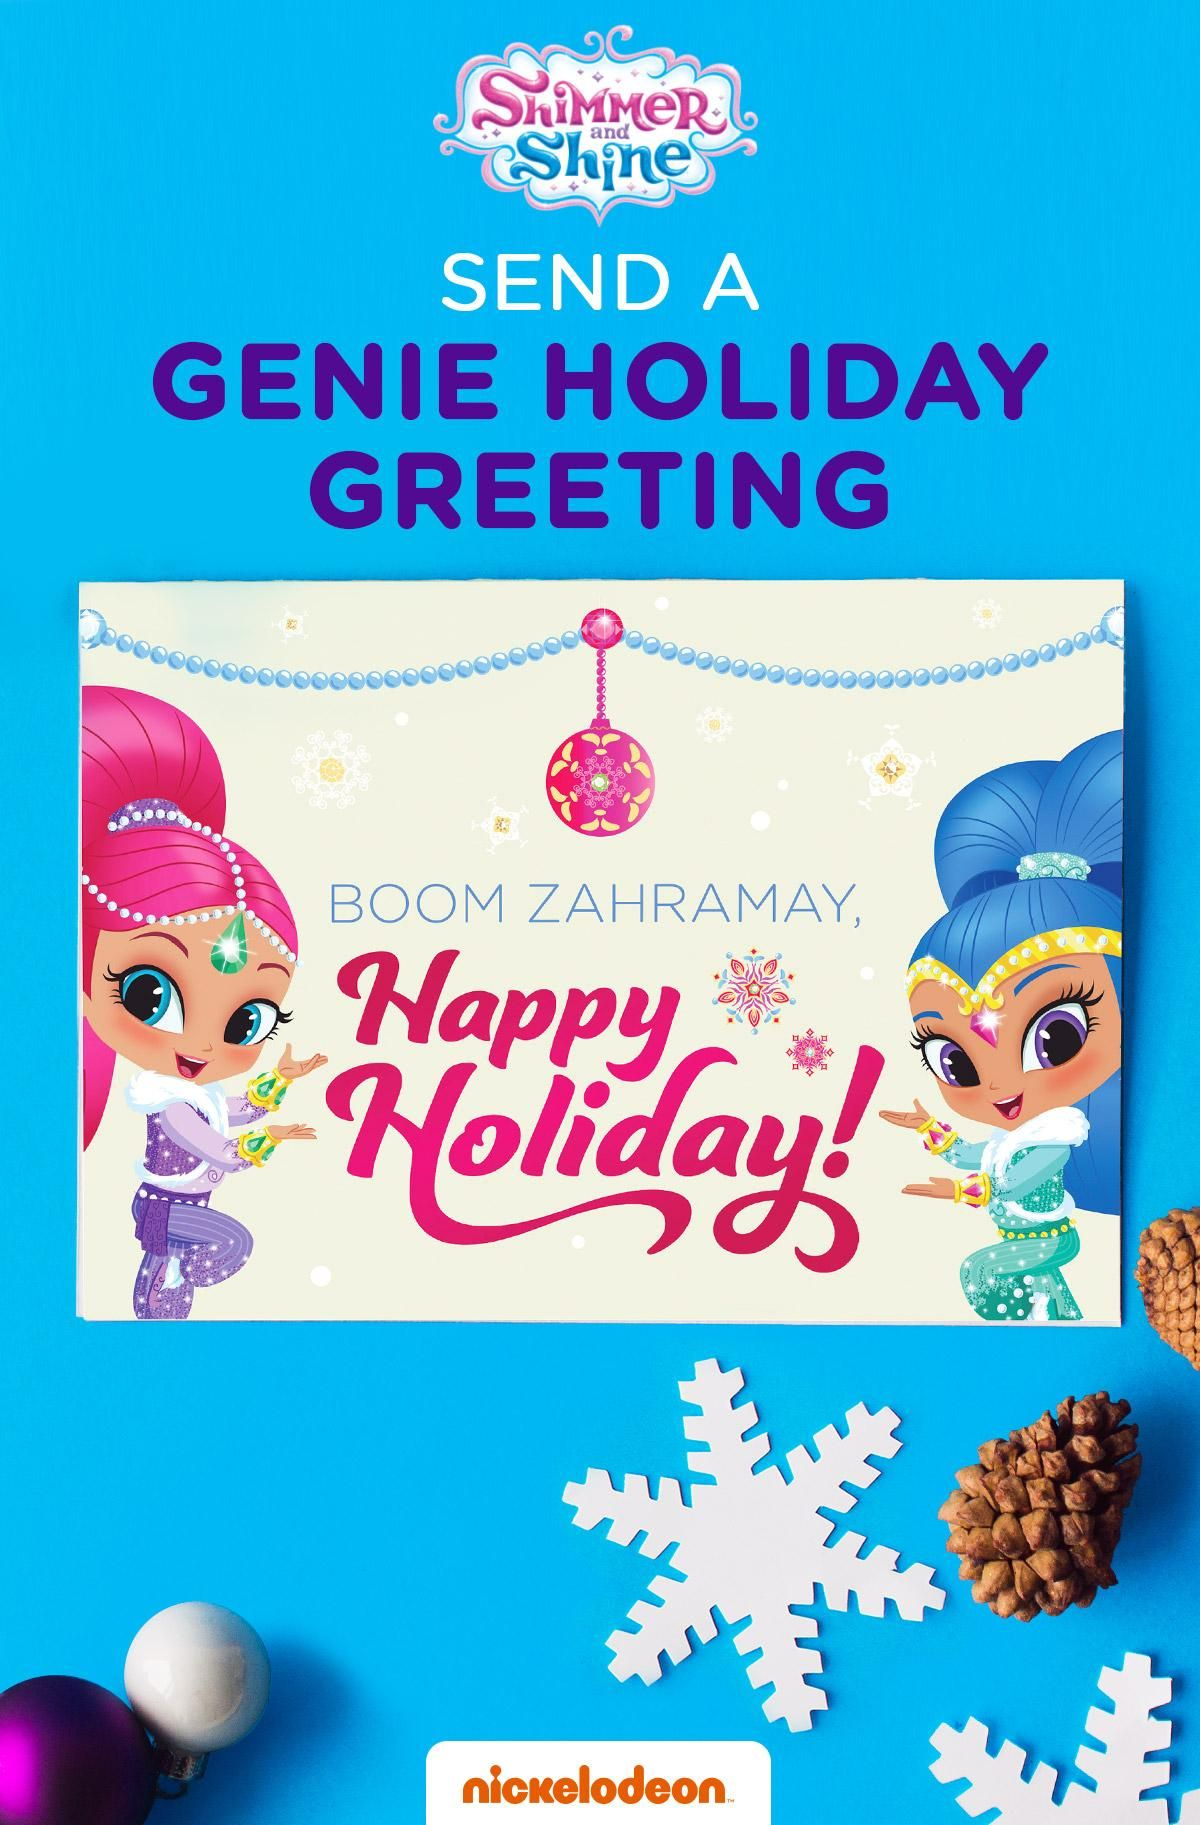 Shimmer Shine Holiday Card Holiday Greeting Cards Children S